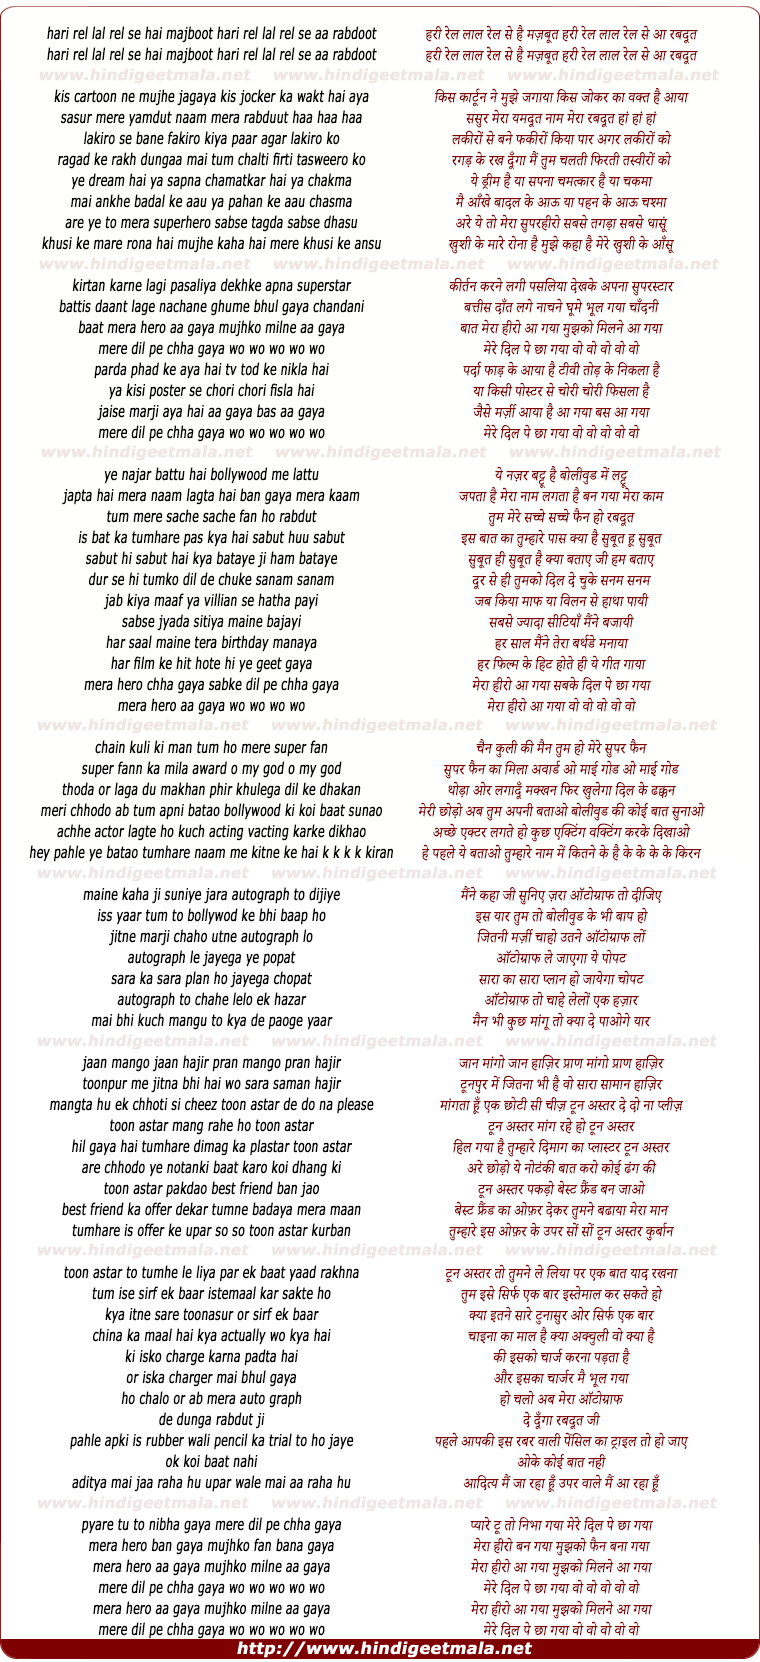 lyrics of song Rabdoot